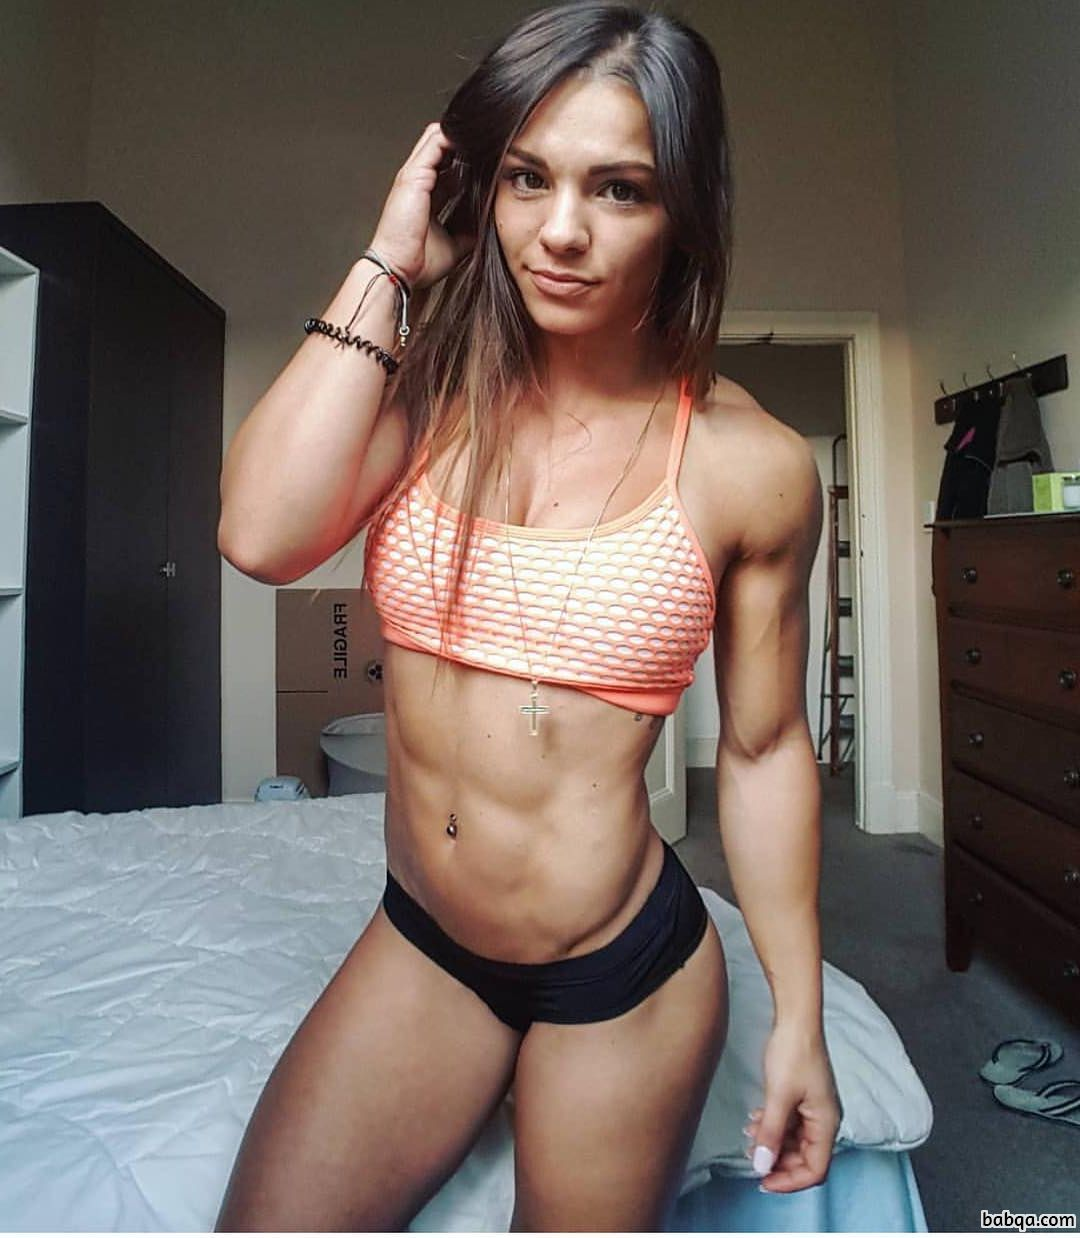 cute lady with fitness body and toned biceps photo from flickr